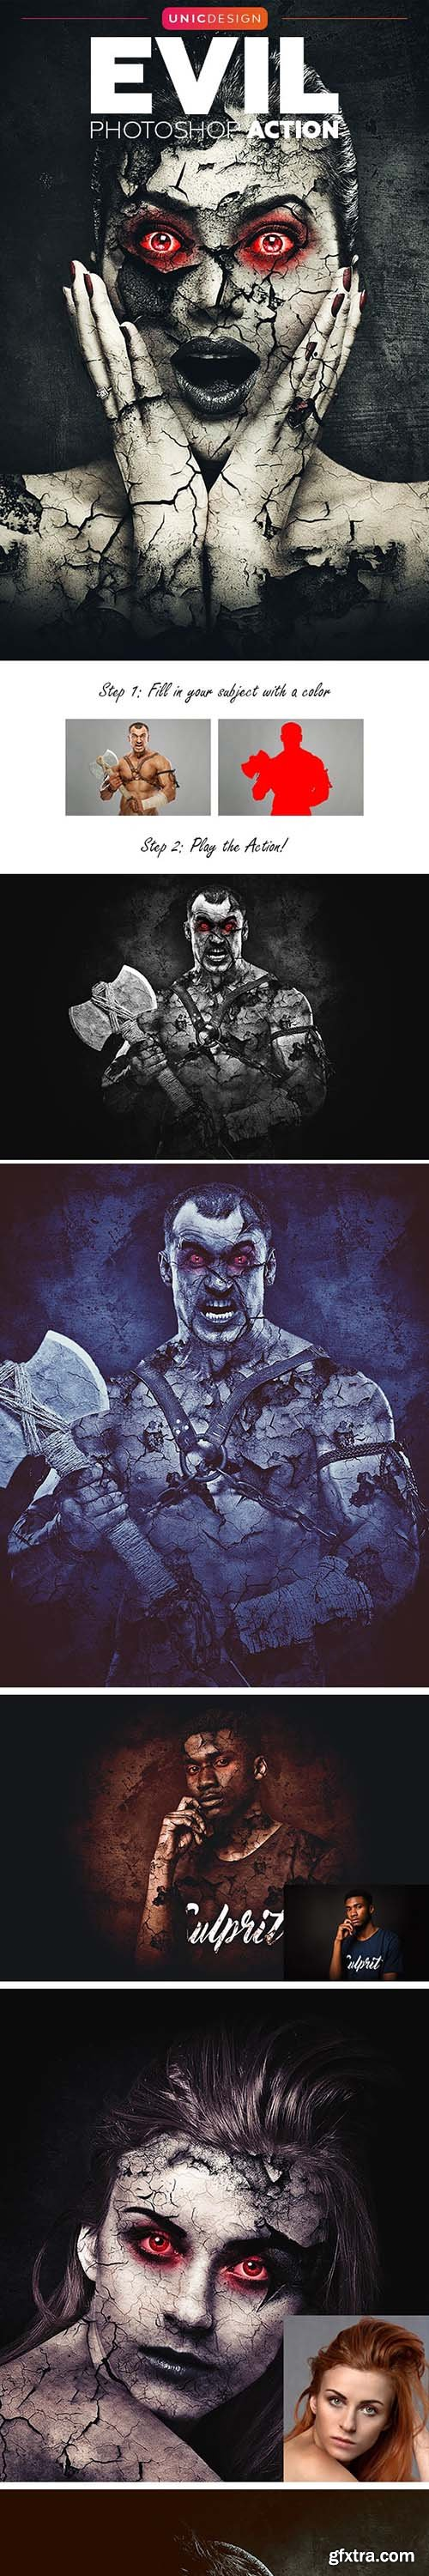 GraphicRiver - Evil Photoshop Action 20775590